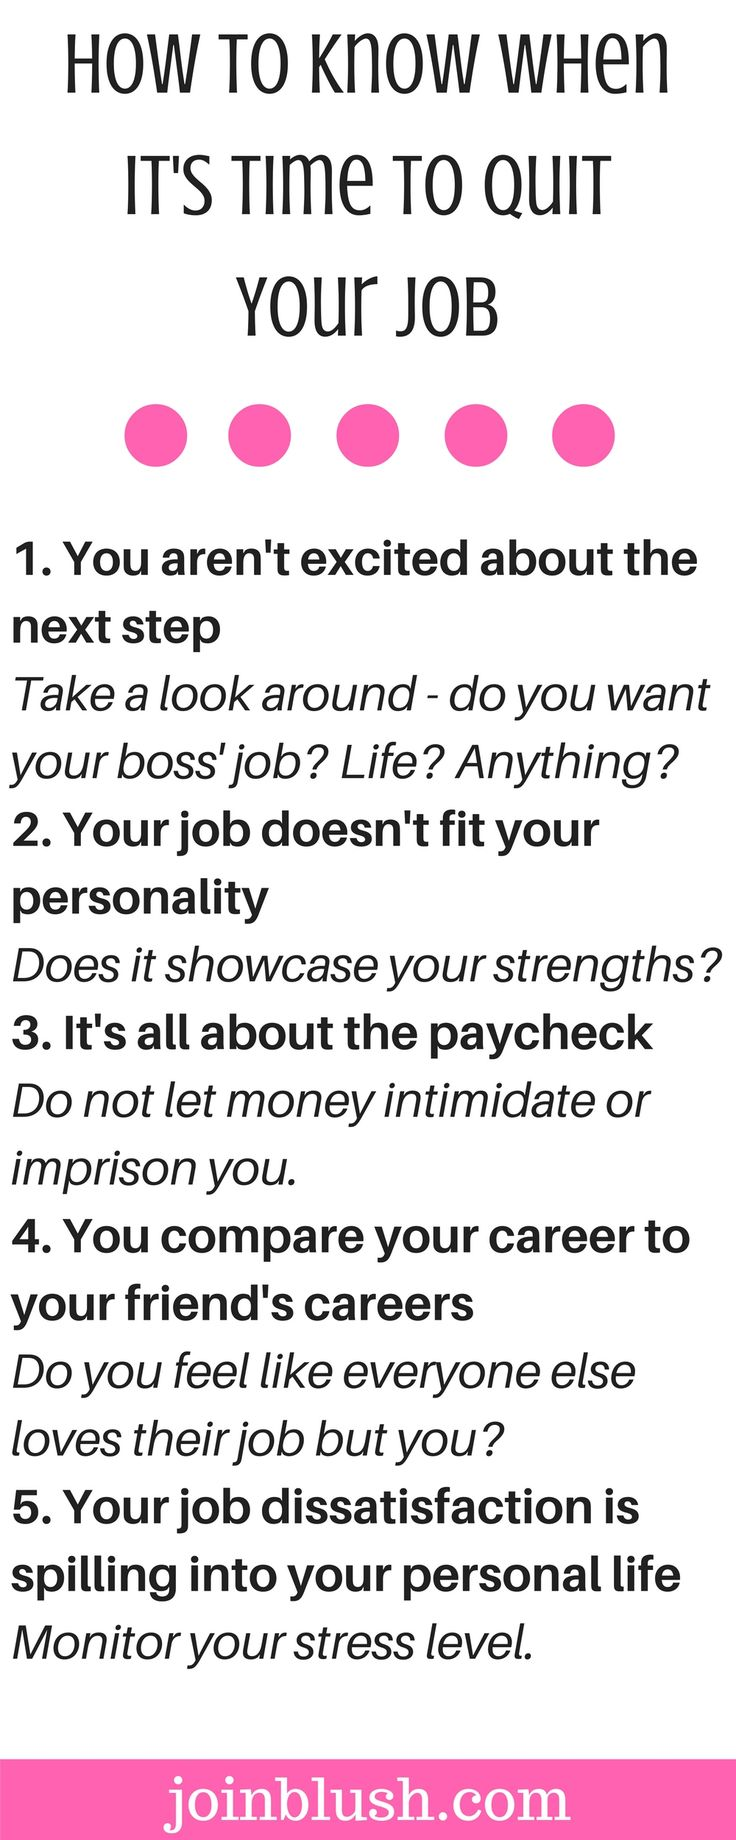 best ideas about quitting your job job interview how to know when it s time to quit your job